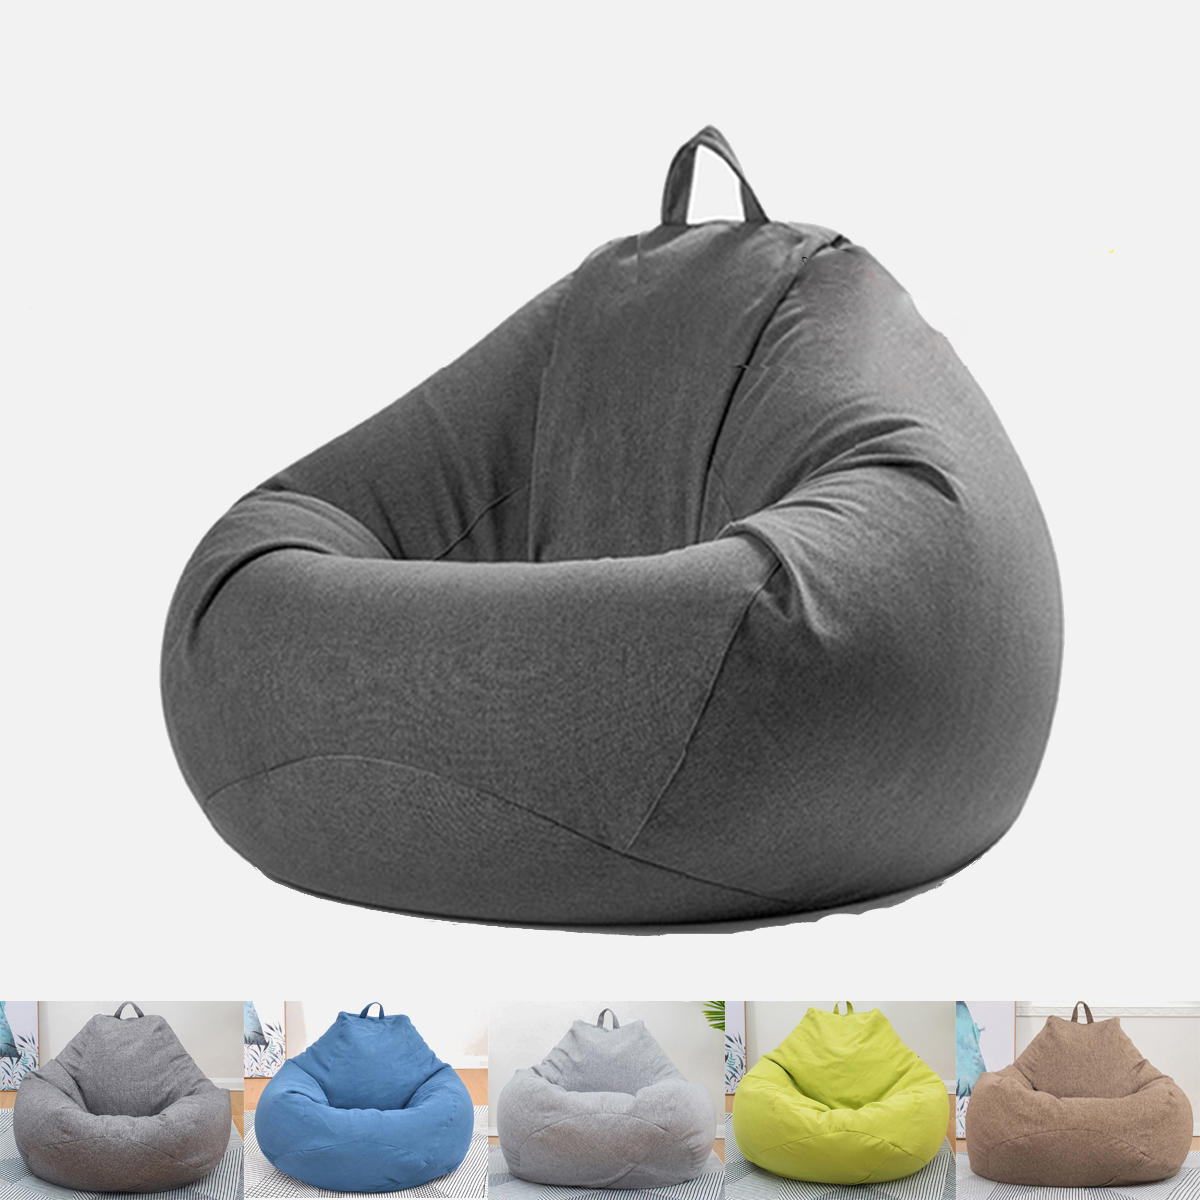 Stupendous Extra Large Bean Bag Chair Lazy Sofa Cover Indoor Outdoor Game Seat Beanbag Uwap Interior Chair Design Uwaporg